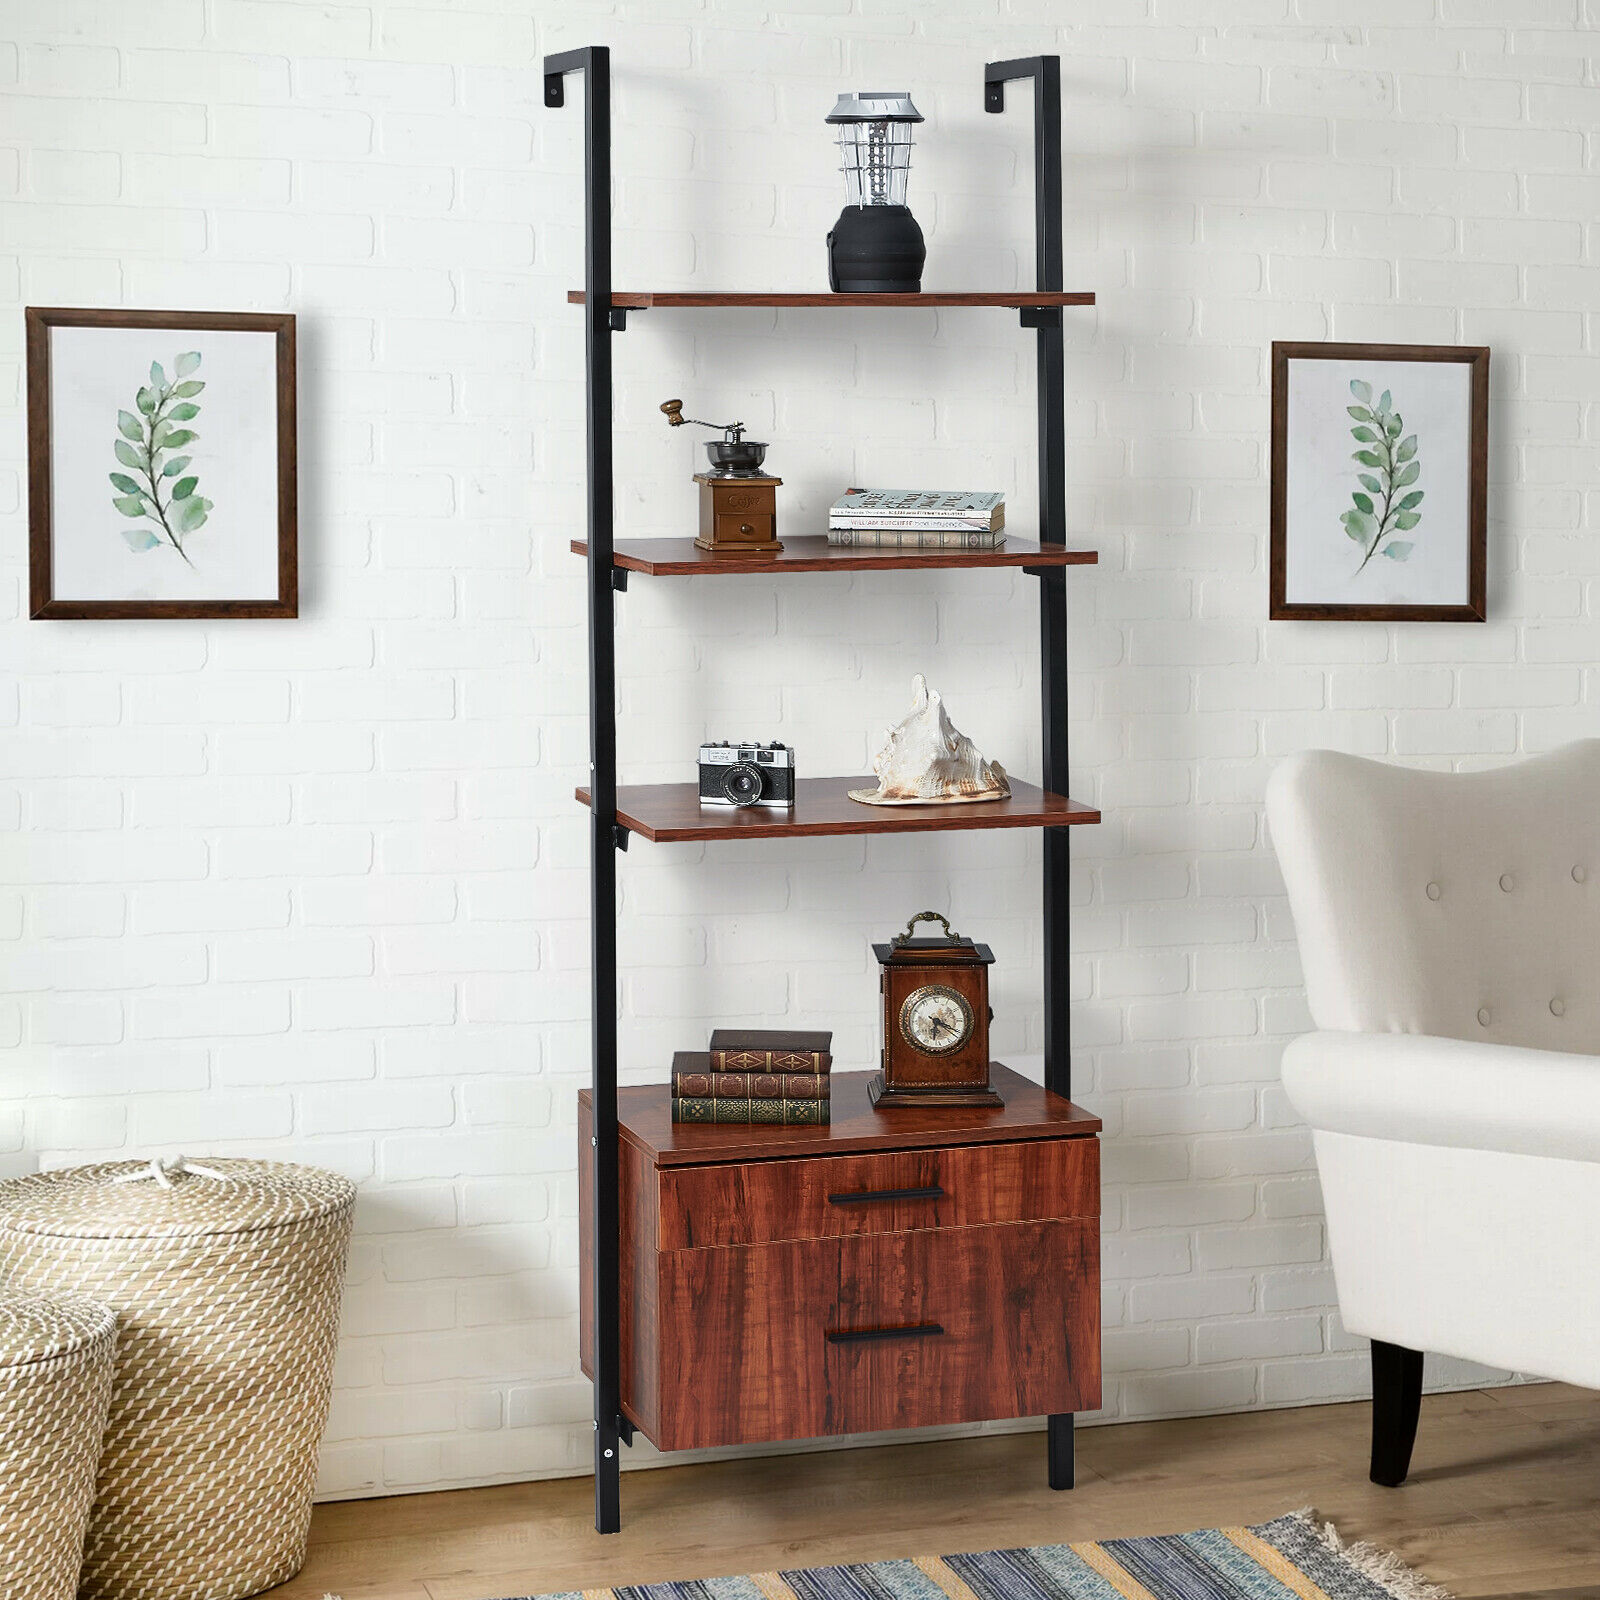 3-Tier Ladder Bookshelf Wall Mounted Storage Shelves Wood Bookcase w/ Drawers Bookcases & Shelving